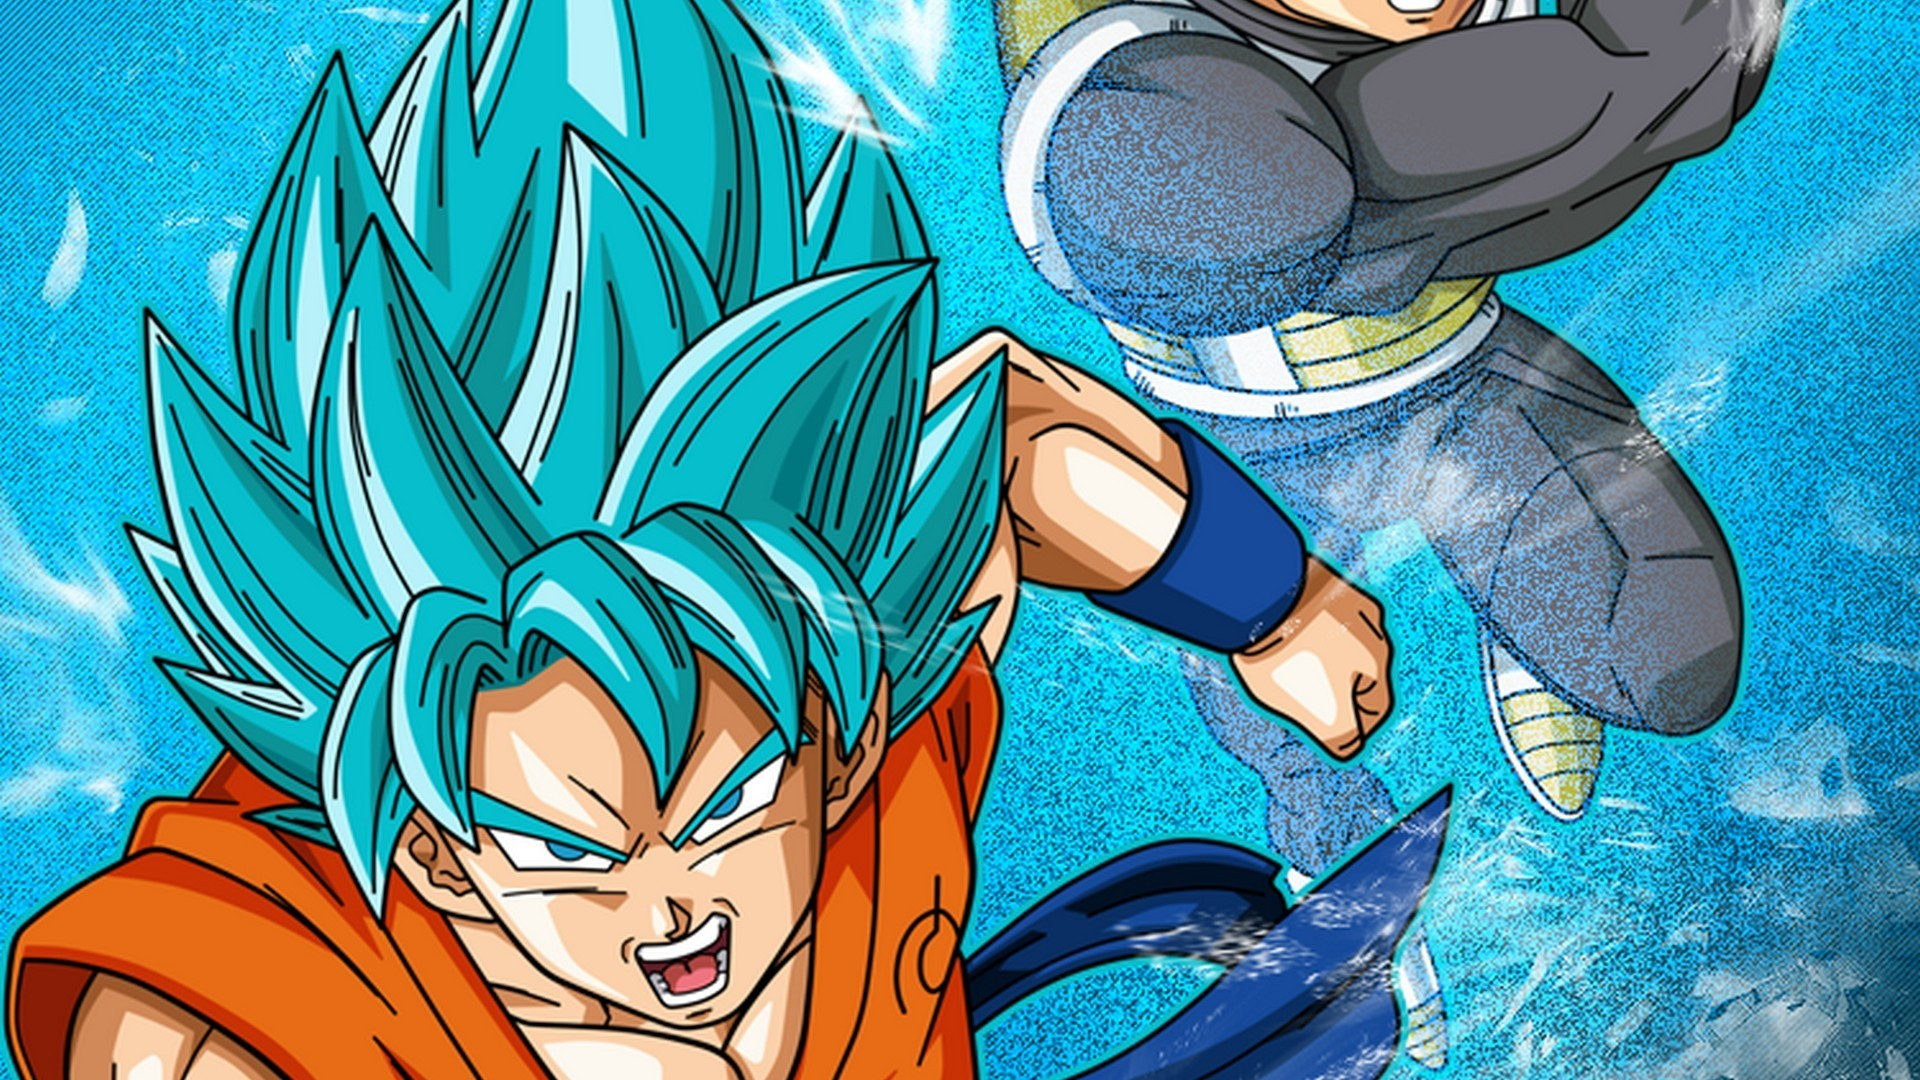 Res: 1920x1080, Goku SSJ Blue Desktop Wallpaper with image resolution  pixel. You  can use this wallpaper